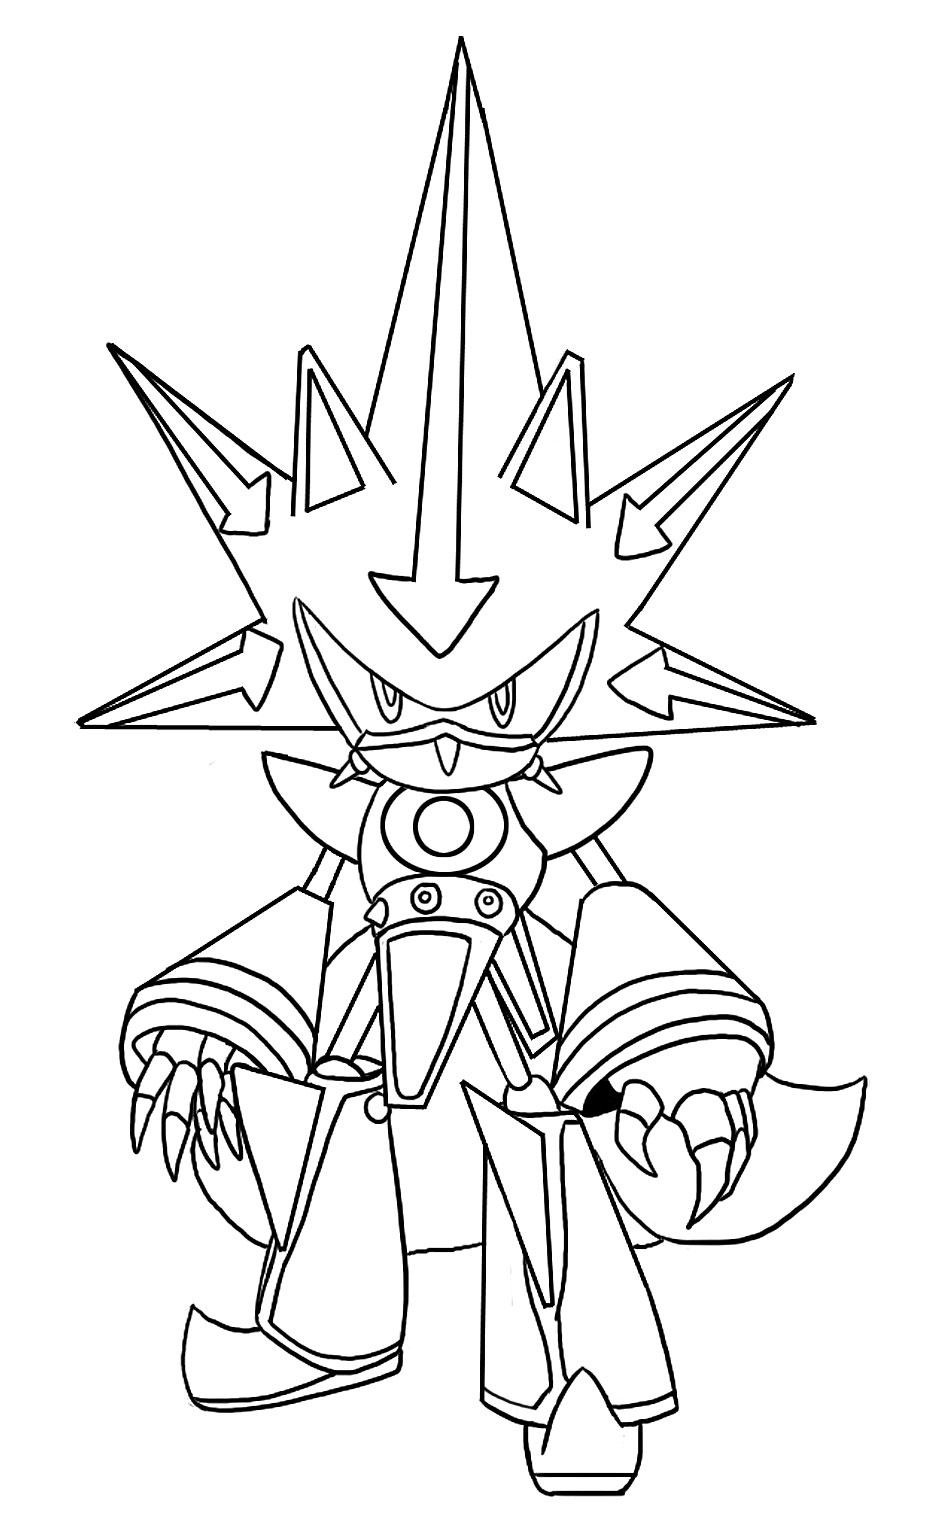 sonic the hedgehog coloring page 30 free sonic the hedgehog coloring pages printable page hedgehog the sonic coloring